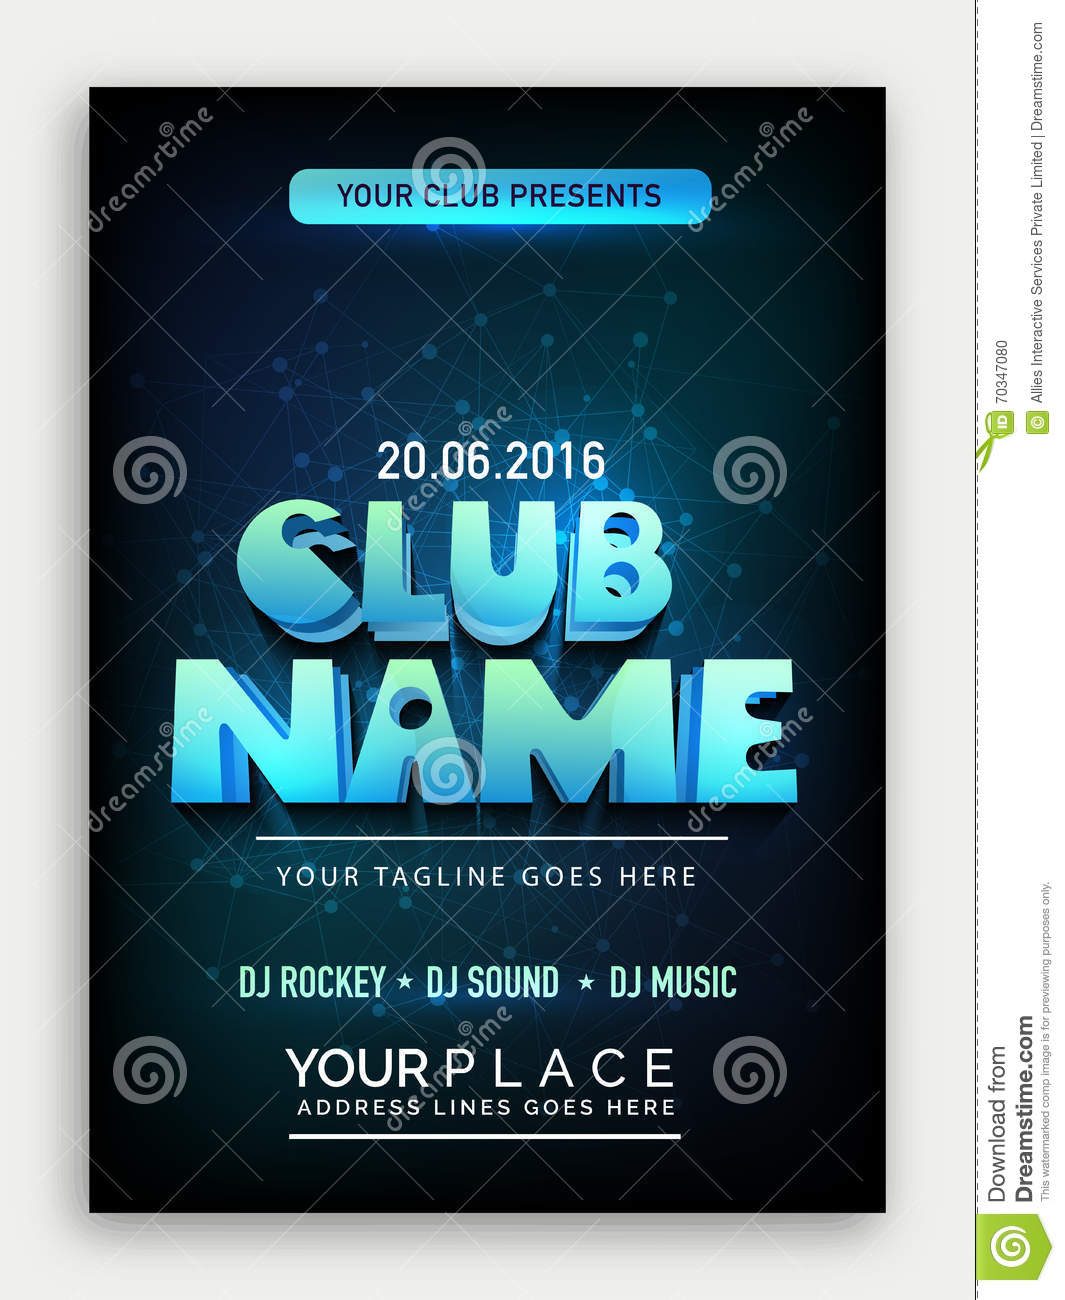 music party flyer template or banner design royalty free stock photo 70818507. Black Bedroom Furniture Sets. Home Design Ideas